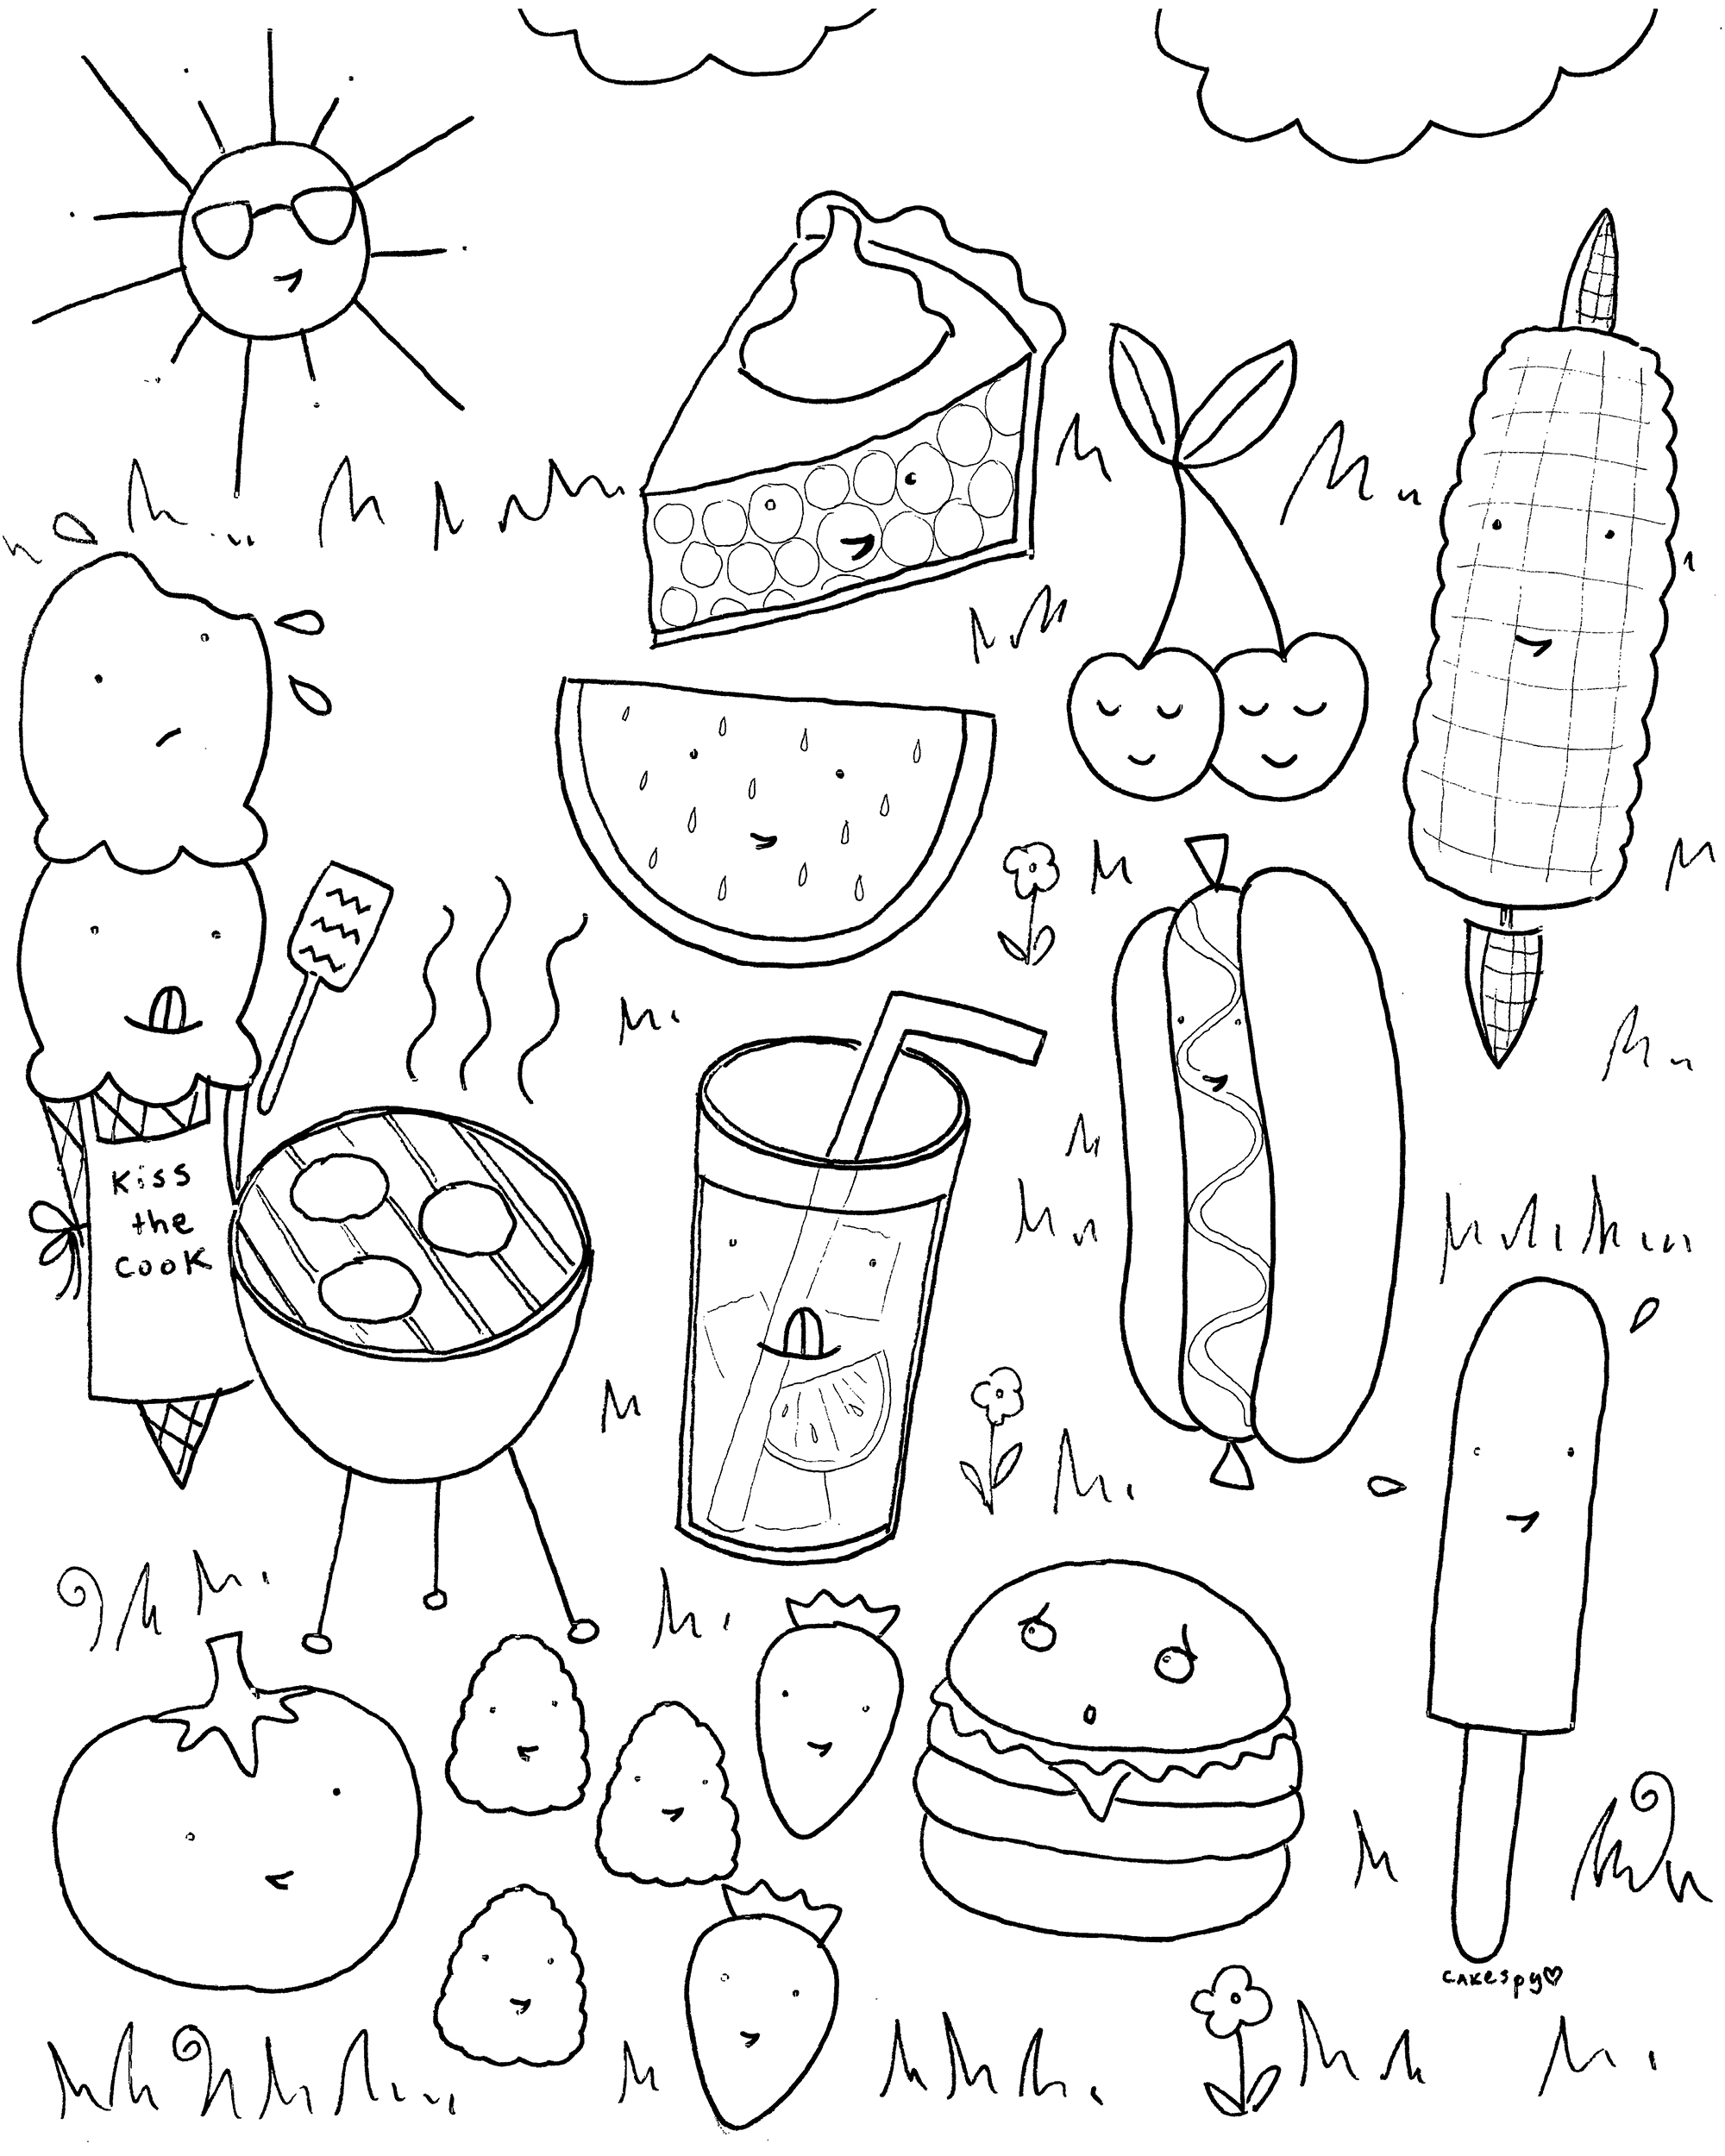 2000x2500 Free Downloadable Summer Luxury Download Coloring Pages